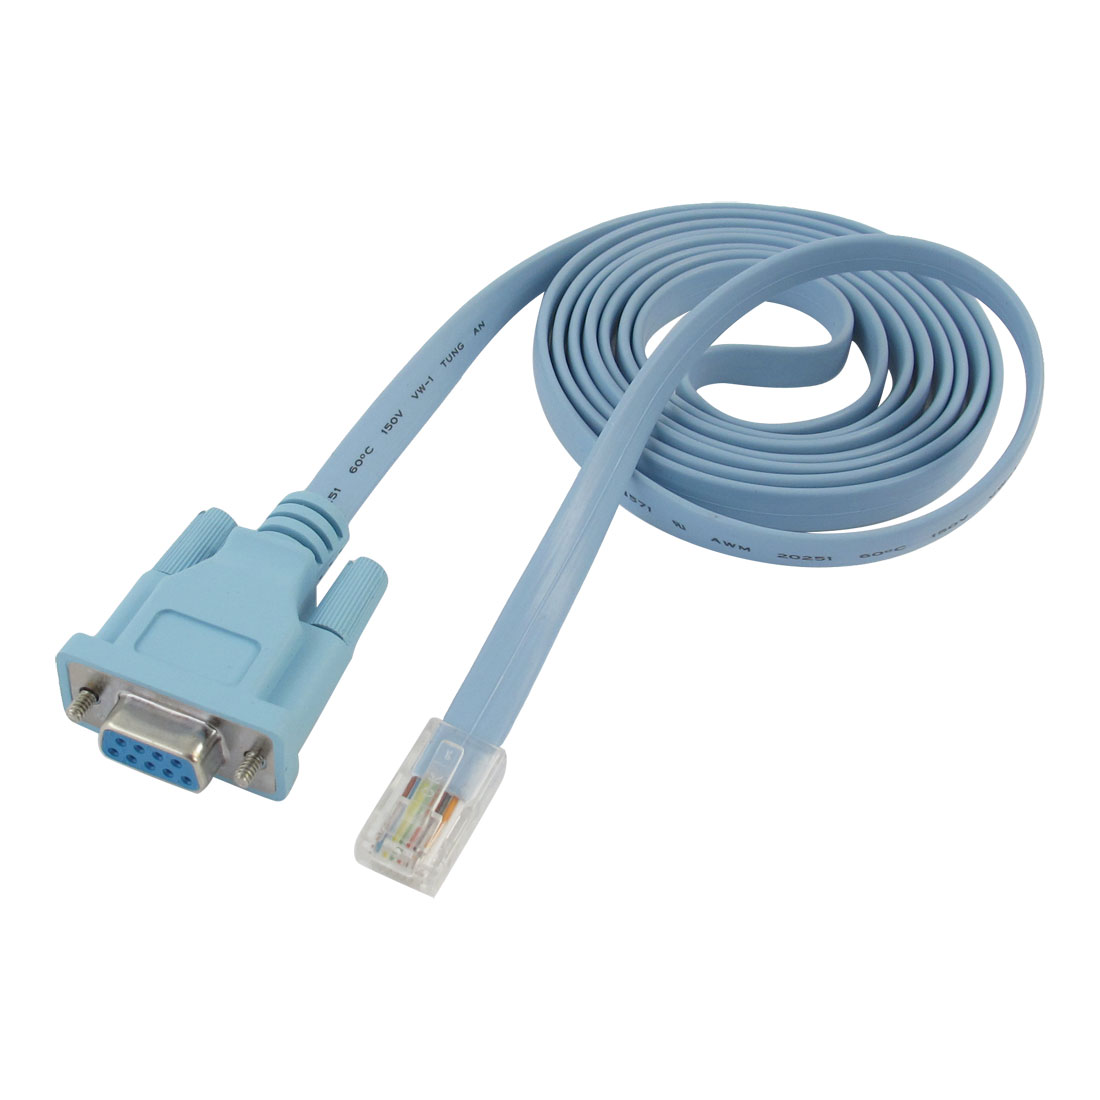 RJ45 Male to RS232 DB9 Female Plug Cable Adapter Light Blue 1.8M 5.9Ft